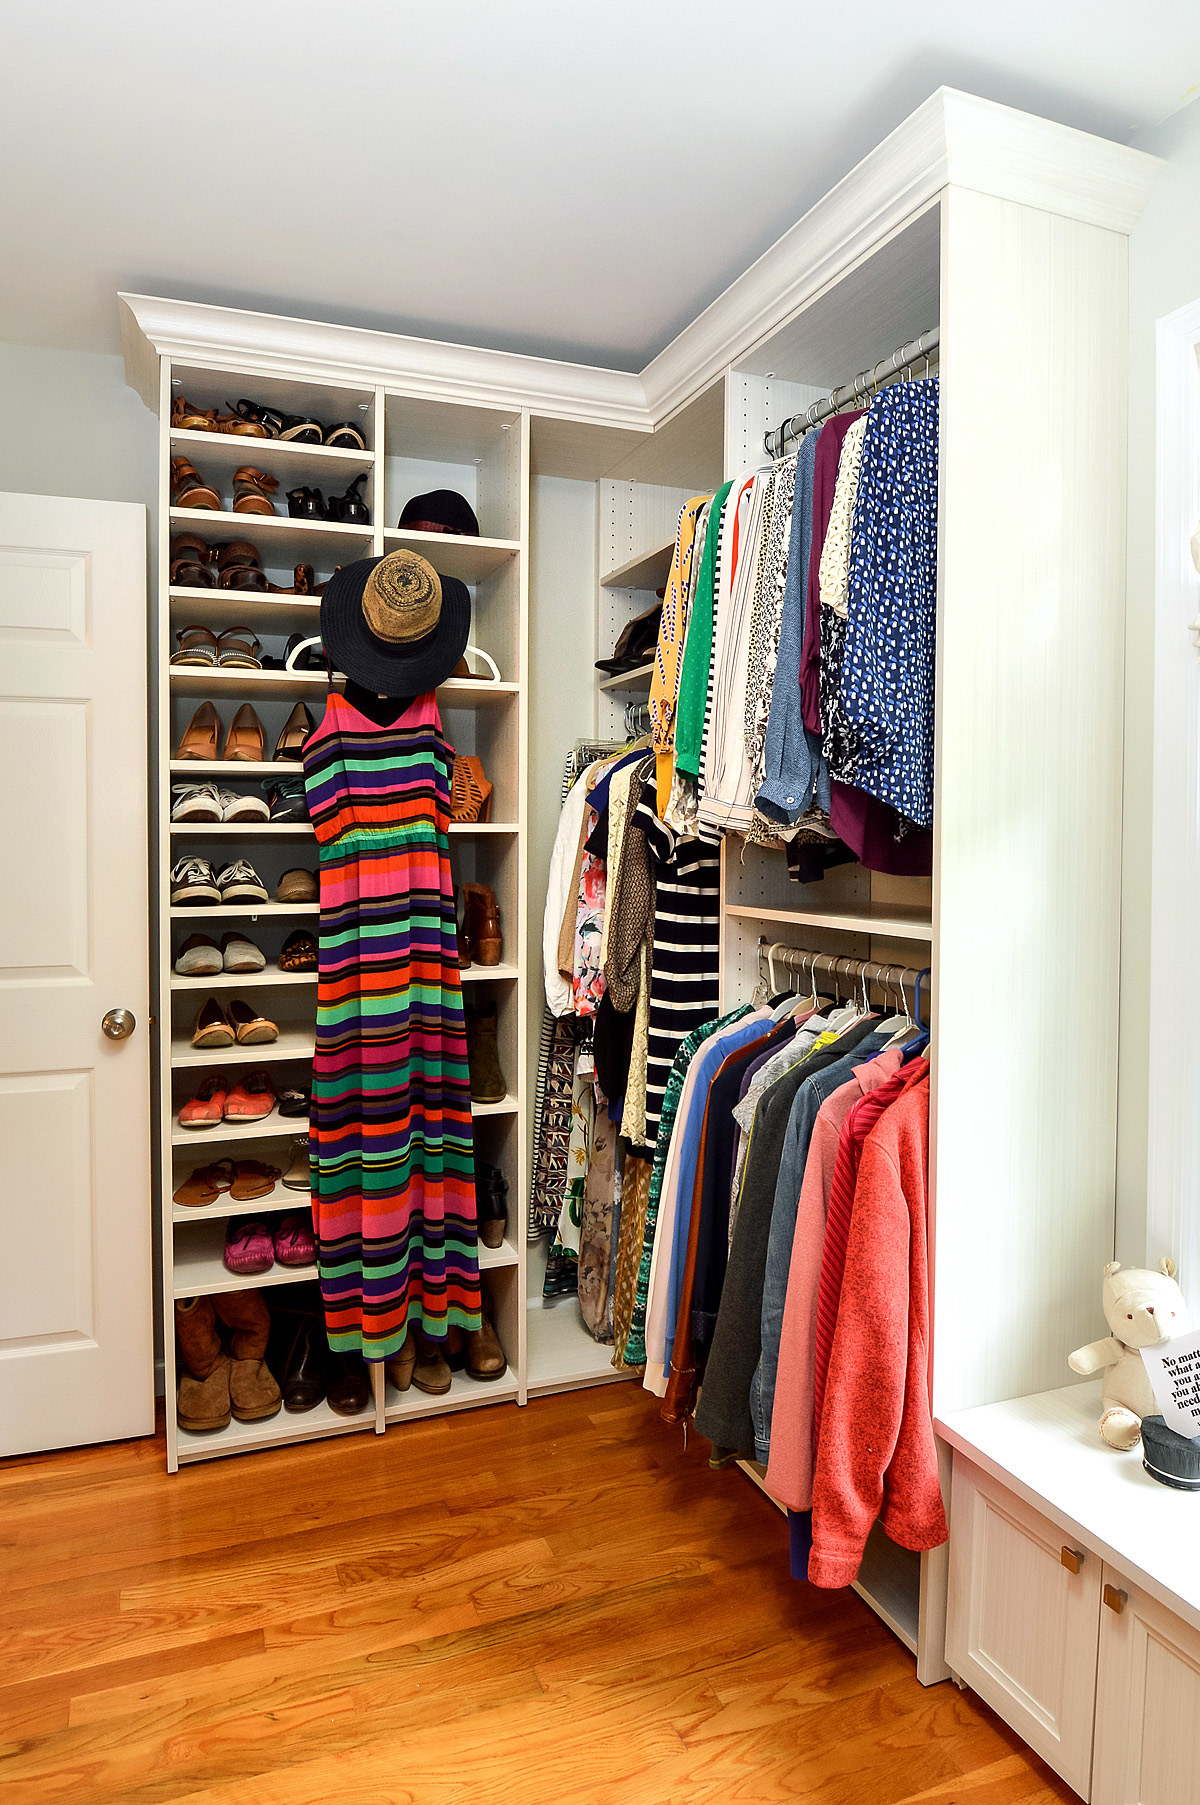 Closet maximizing storage with double hanging